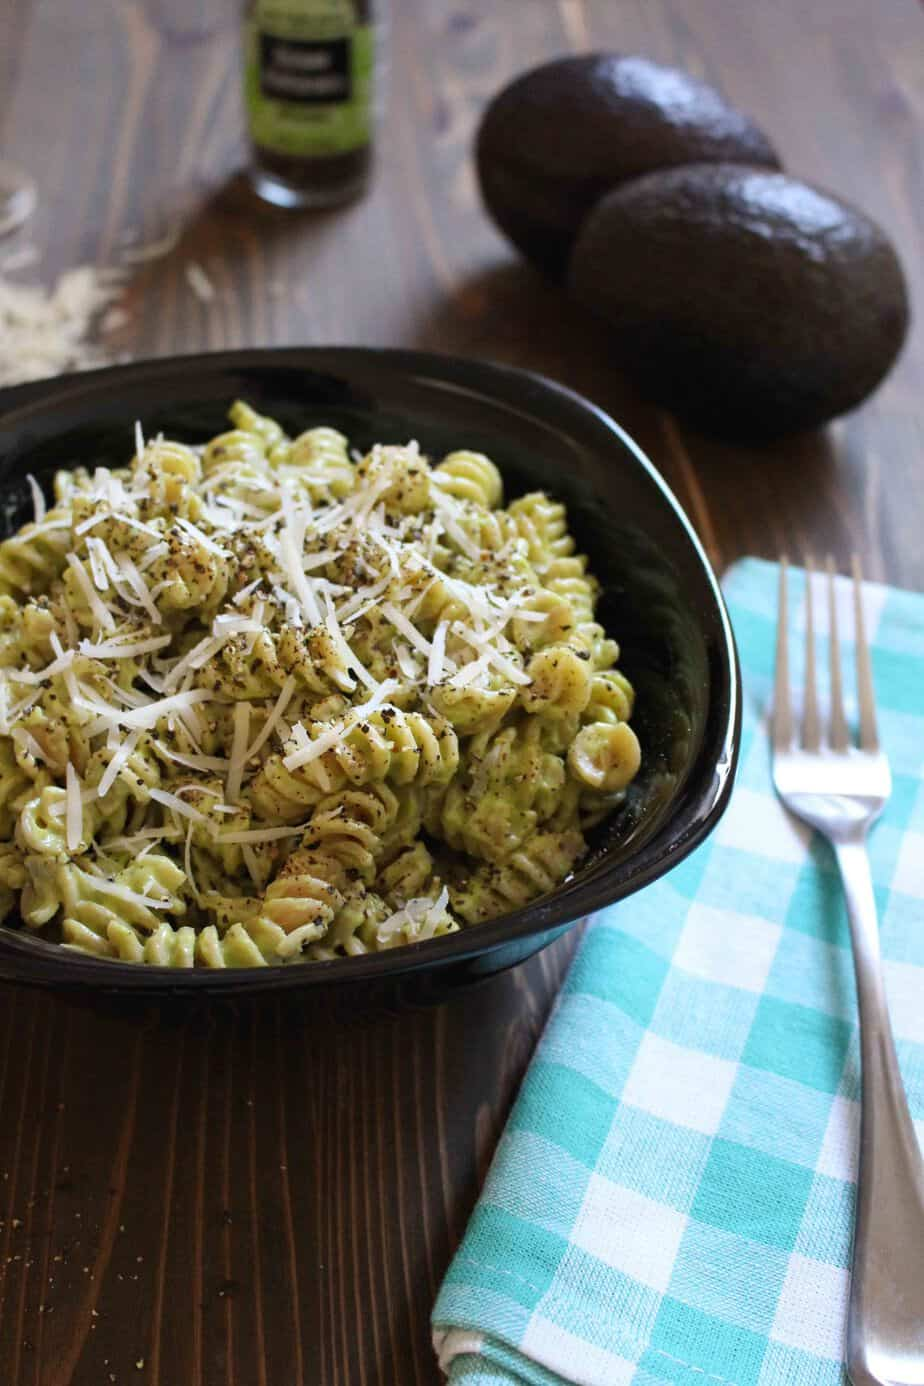 Avocado Alfredo Sauce with Whole Wheat Rotini - just parmesan, avocado, milk, and garlic | Frugal Nutrition